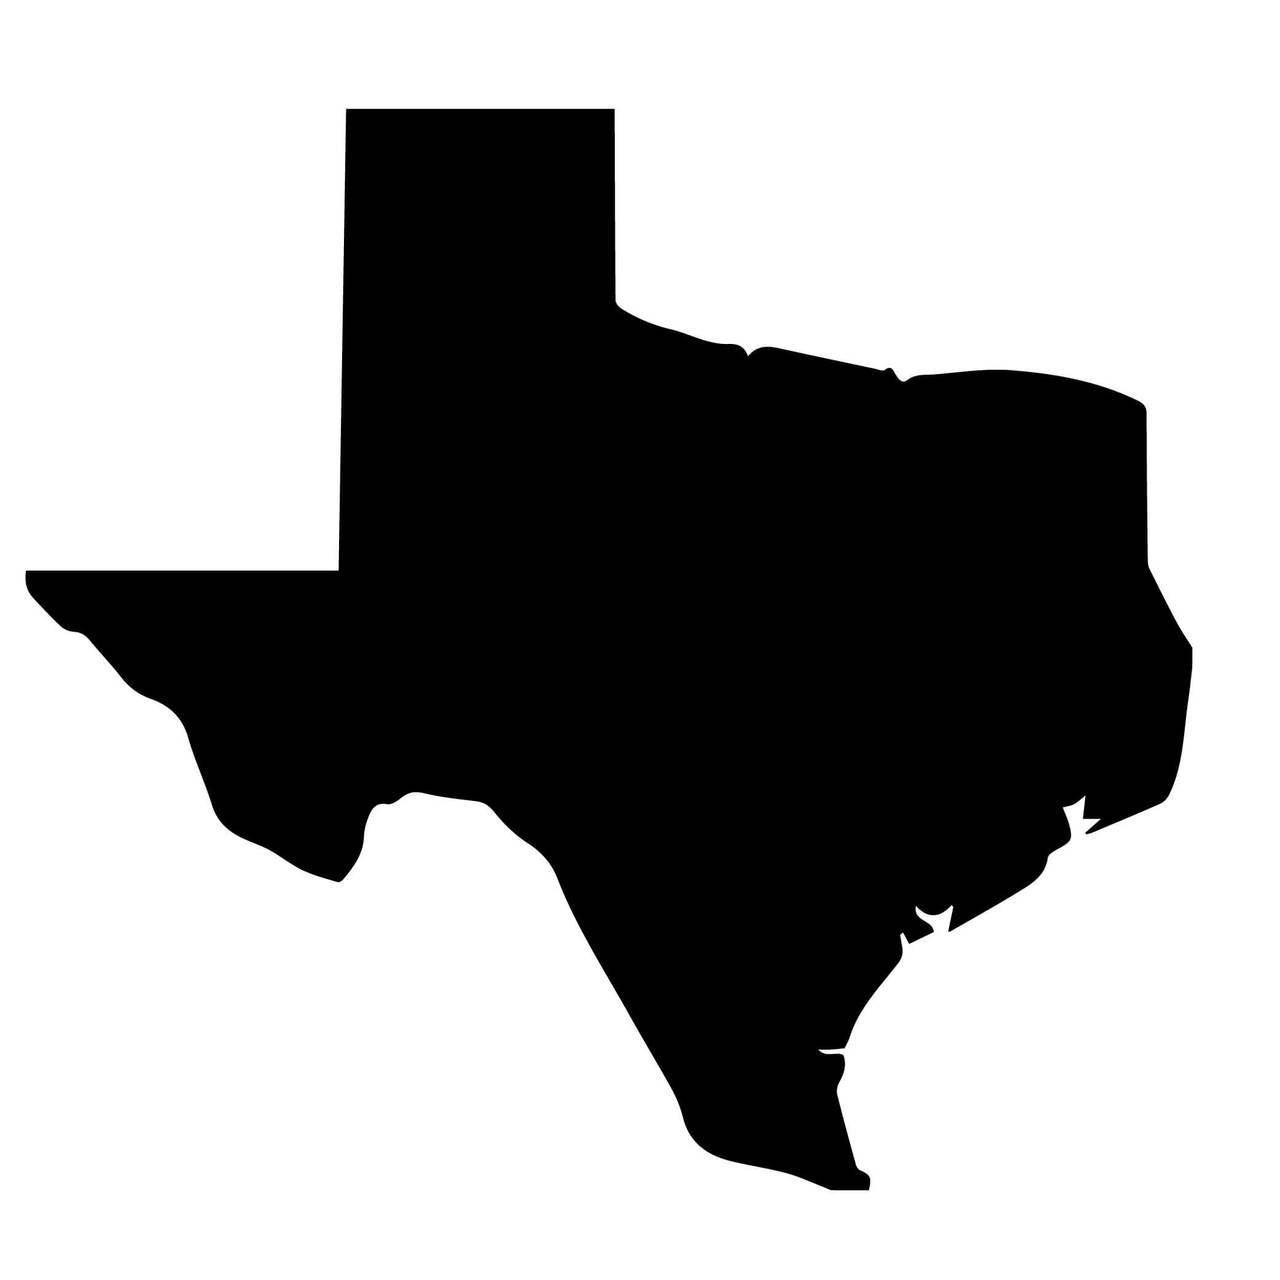 silhouette texas texas silhouette clip art at getdrawings free download texas silhouette